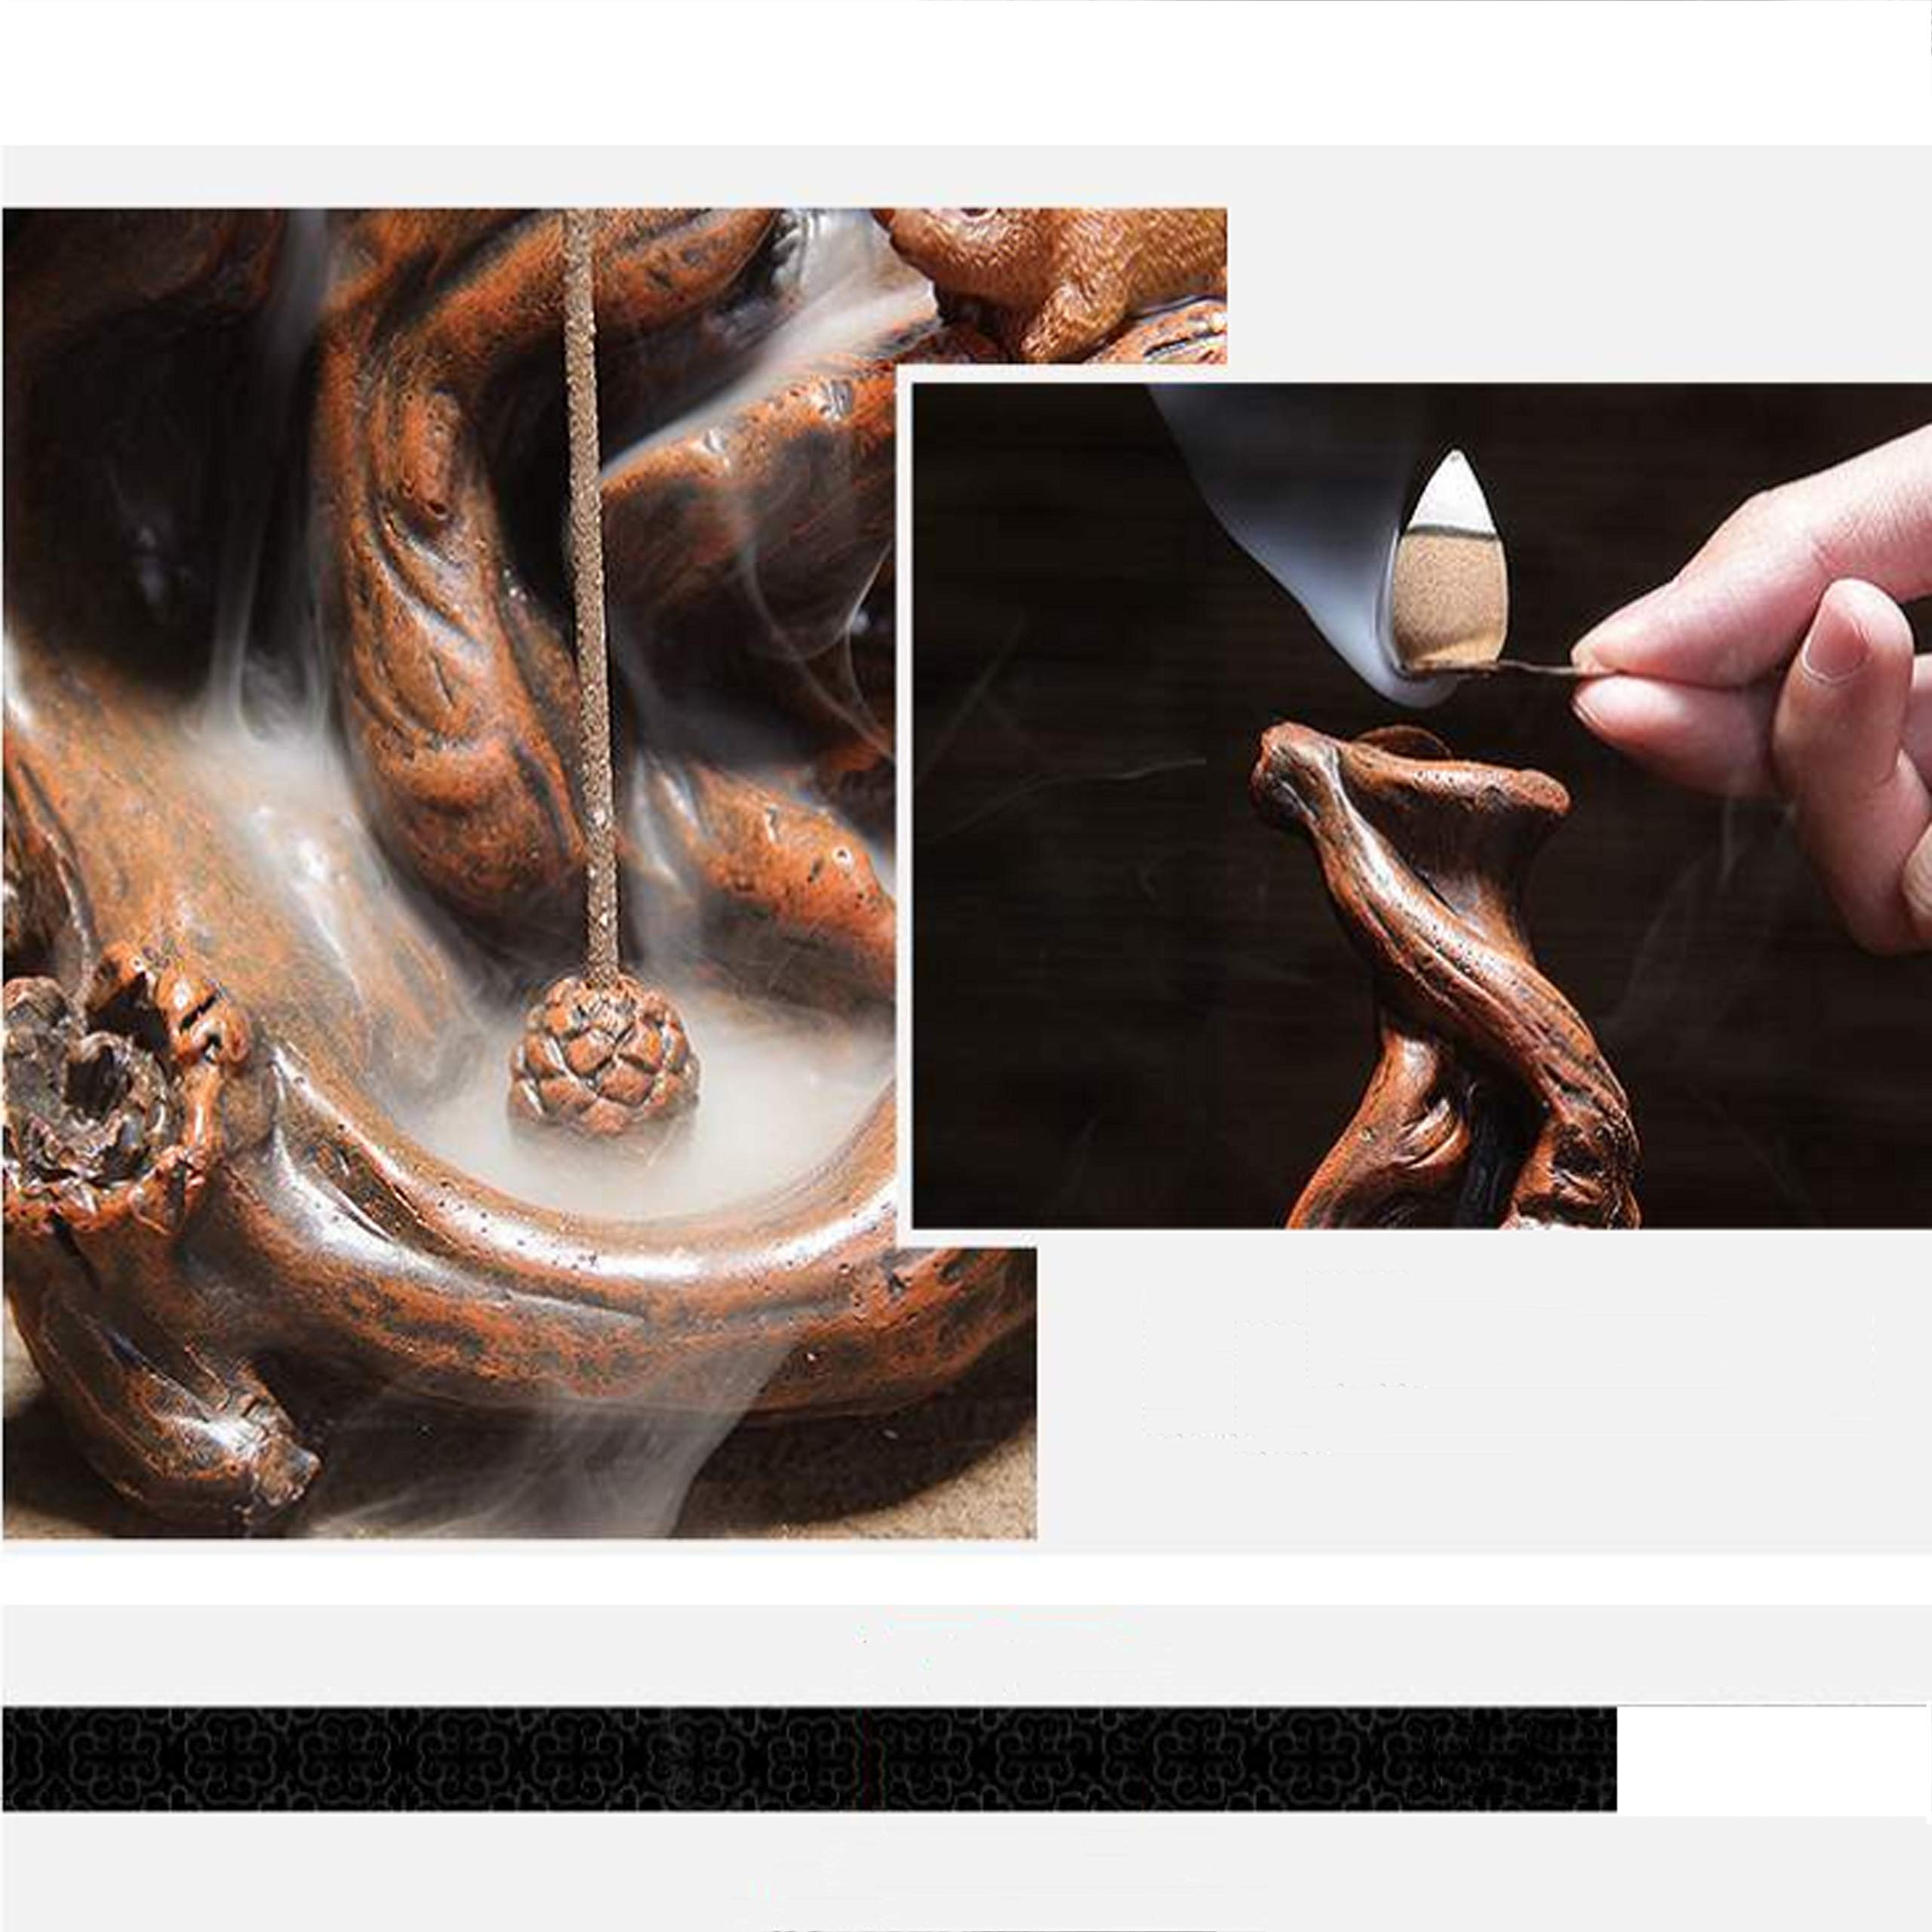 QIAN SHENG Backflow Incense Burner Incense Holder Ceramic Waterfall Incense Holder Home Decor Aromatherapy Ornament by QIAN SHENG (Image #9)